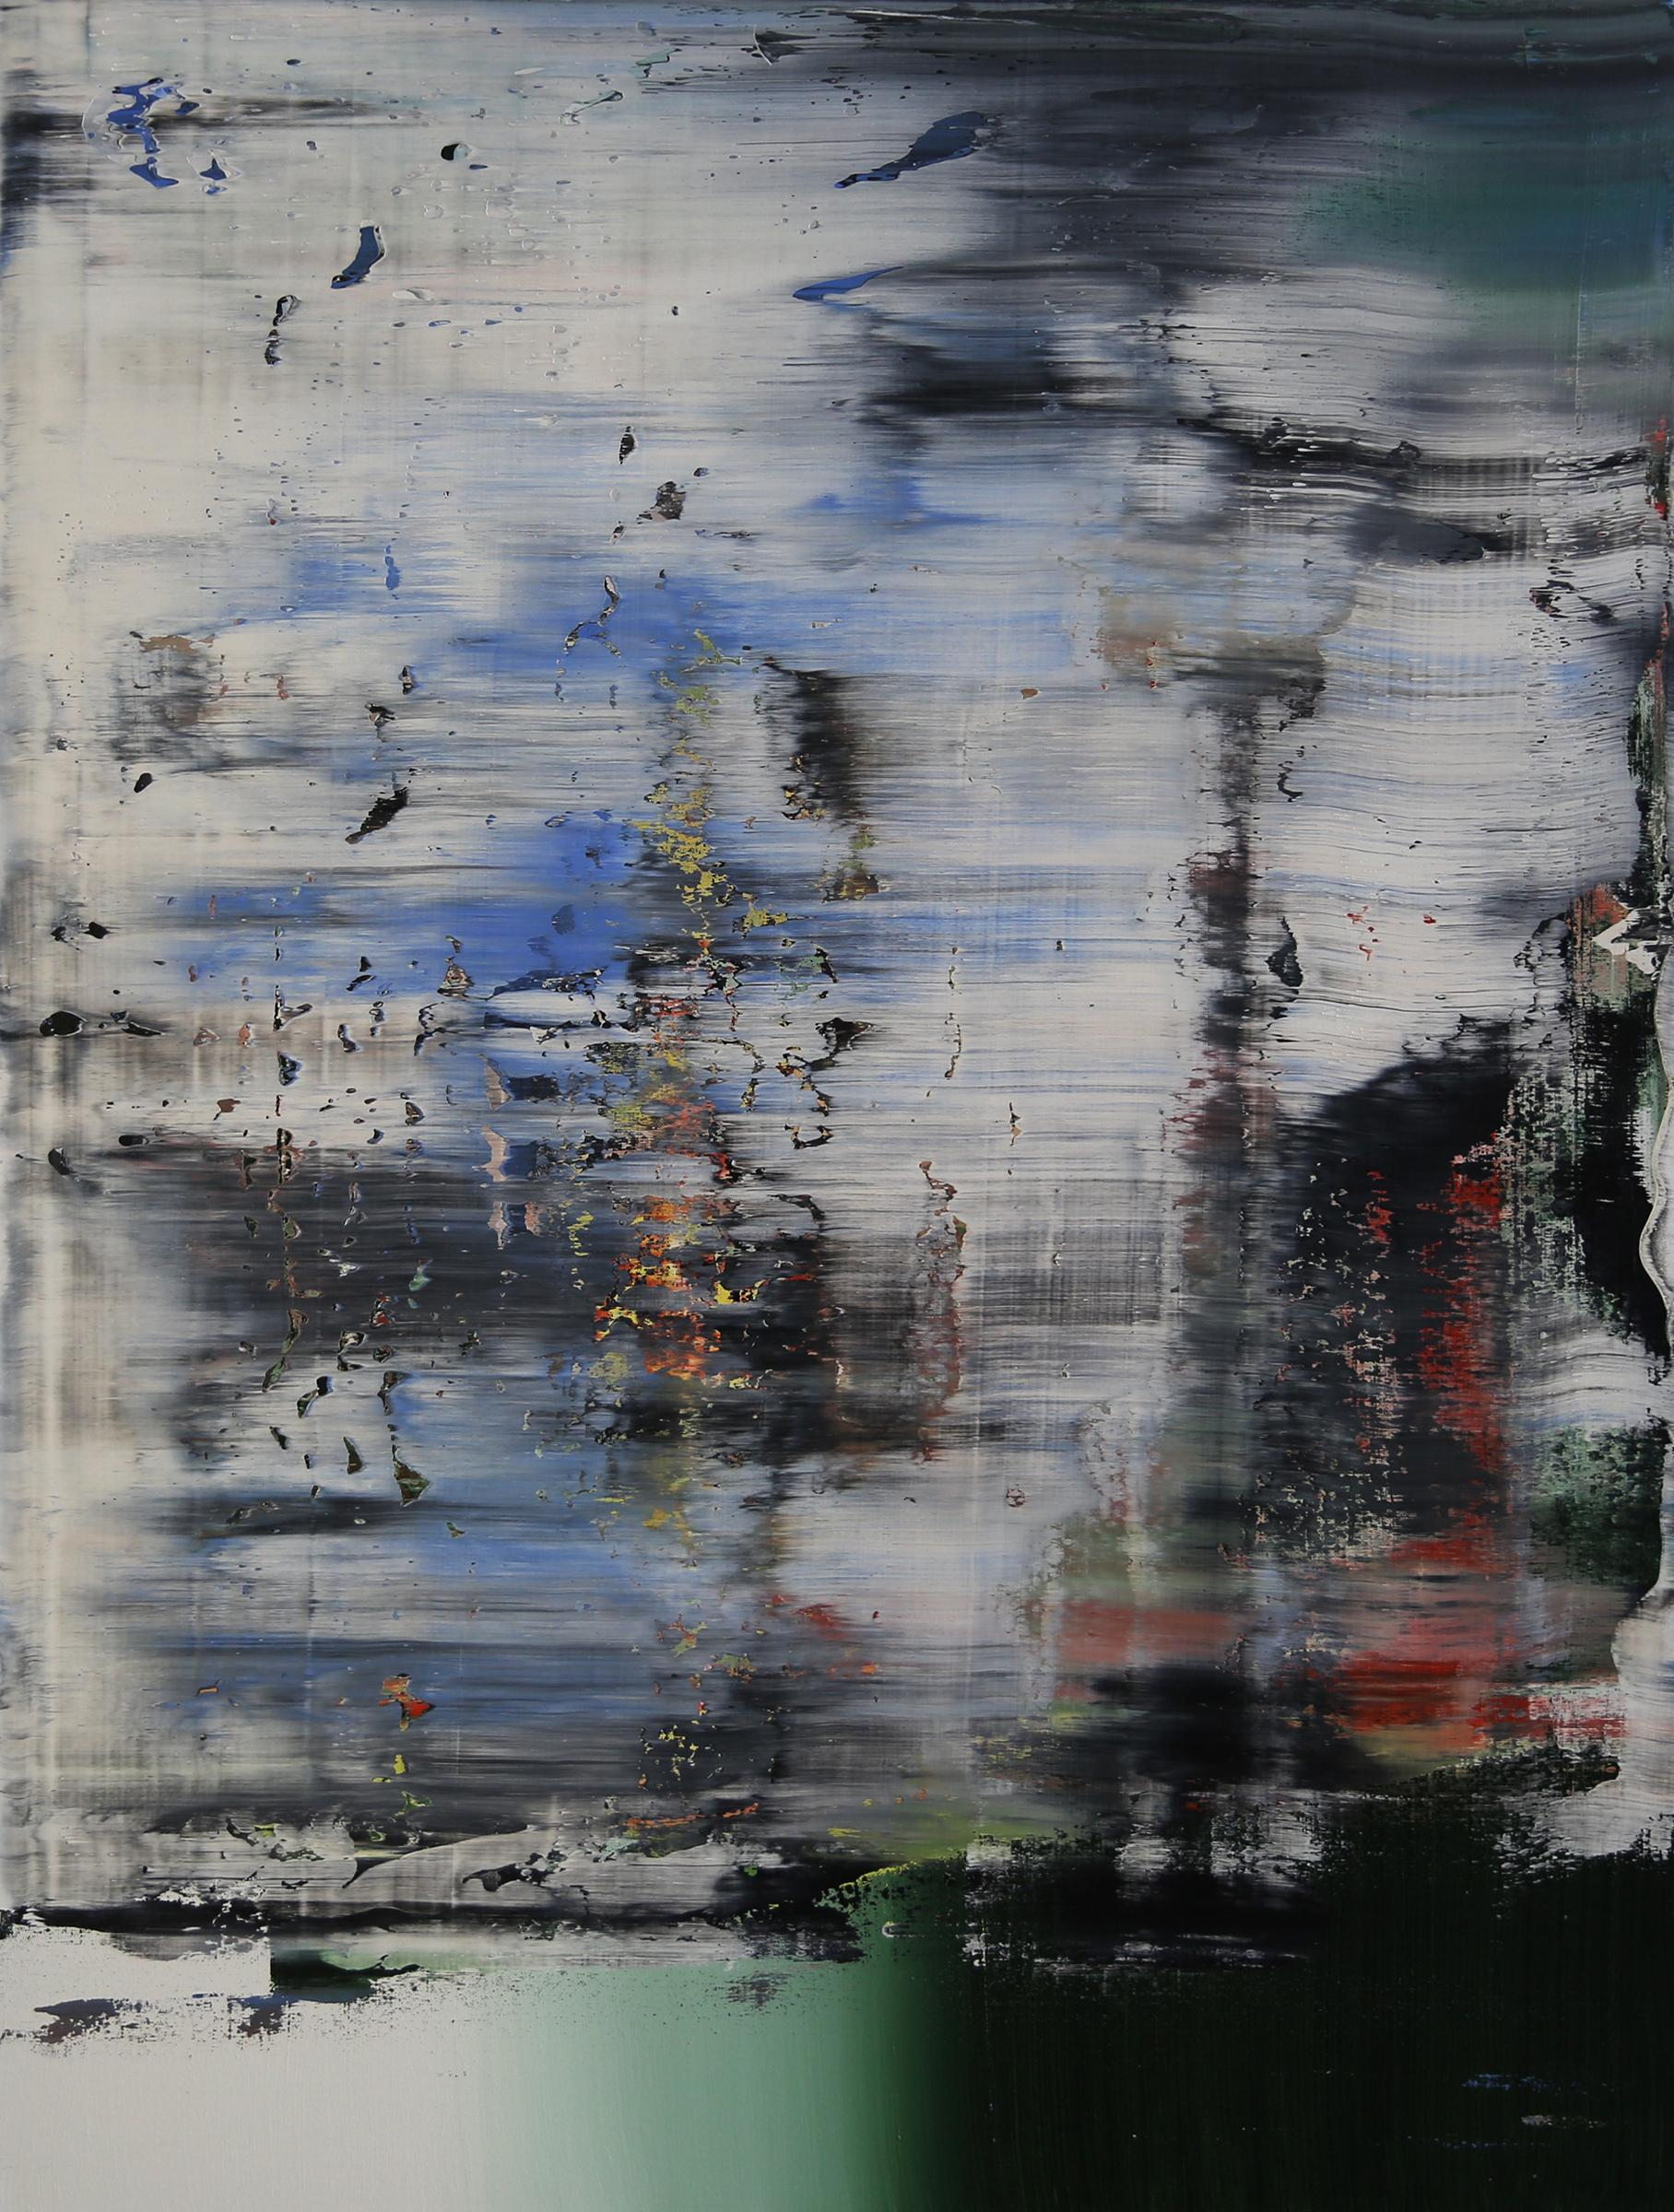 American Contemporary Art by Harry James Moody - Abstract n°263